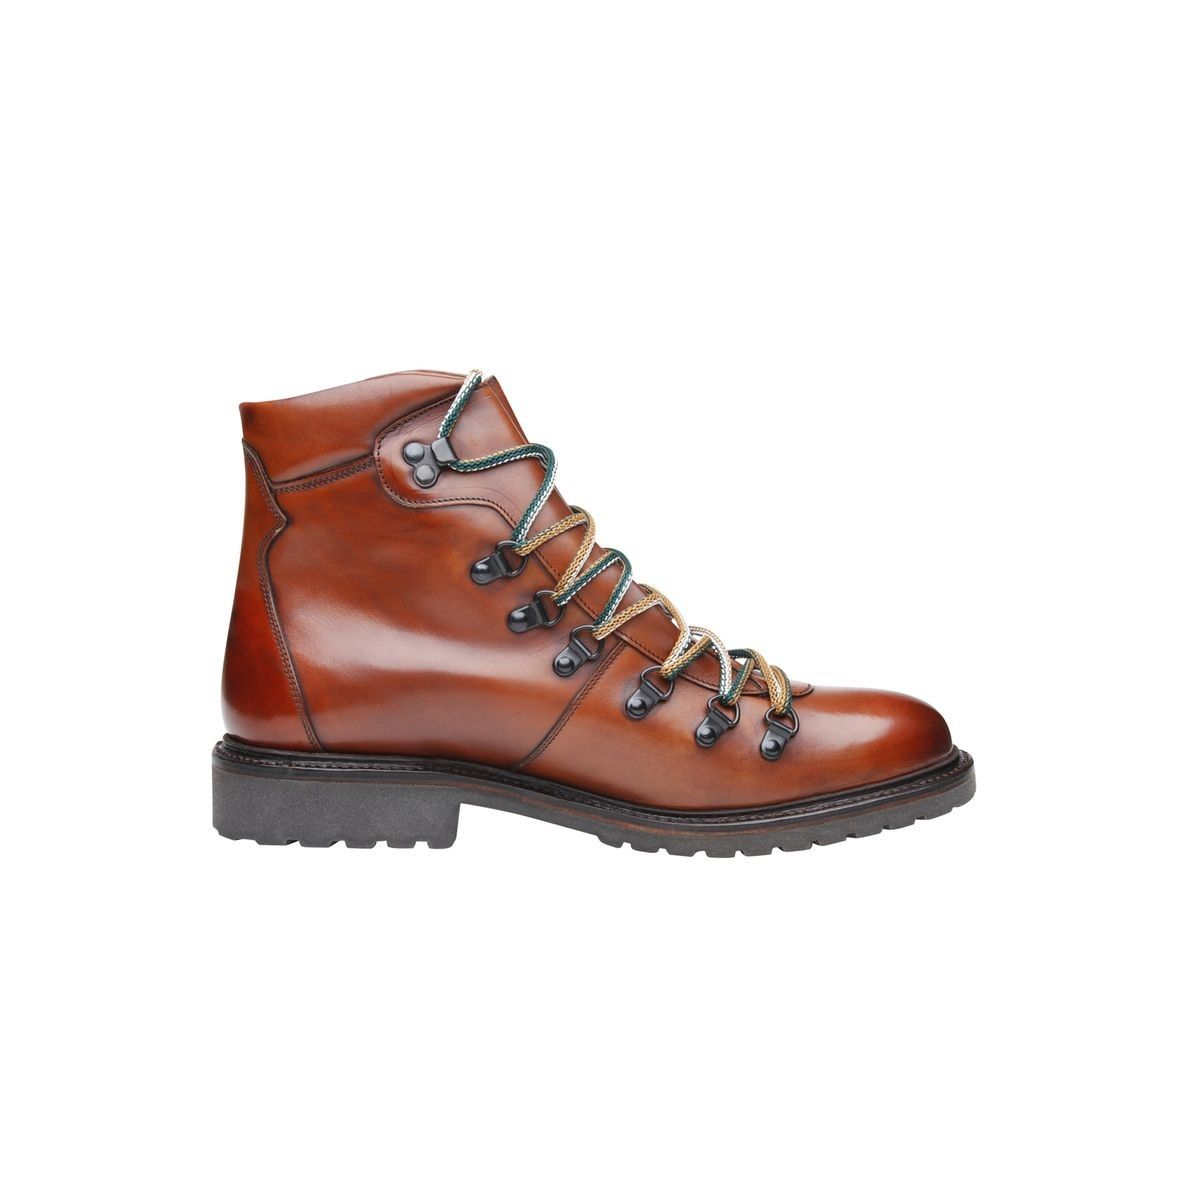 À No666Boots LacetsCuir LacetsCuir Taille38;39;40;40 23 Taille38;39;40;40 23 No666Boots No666Boots À W9bDHEIe2Y